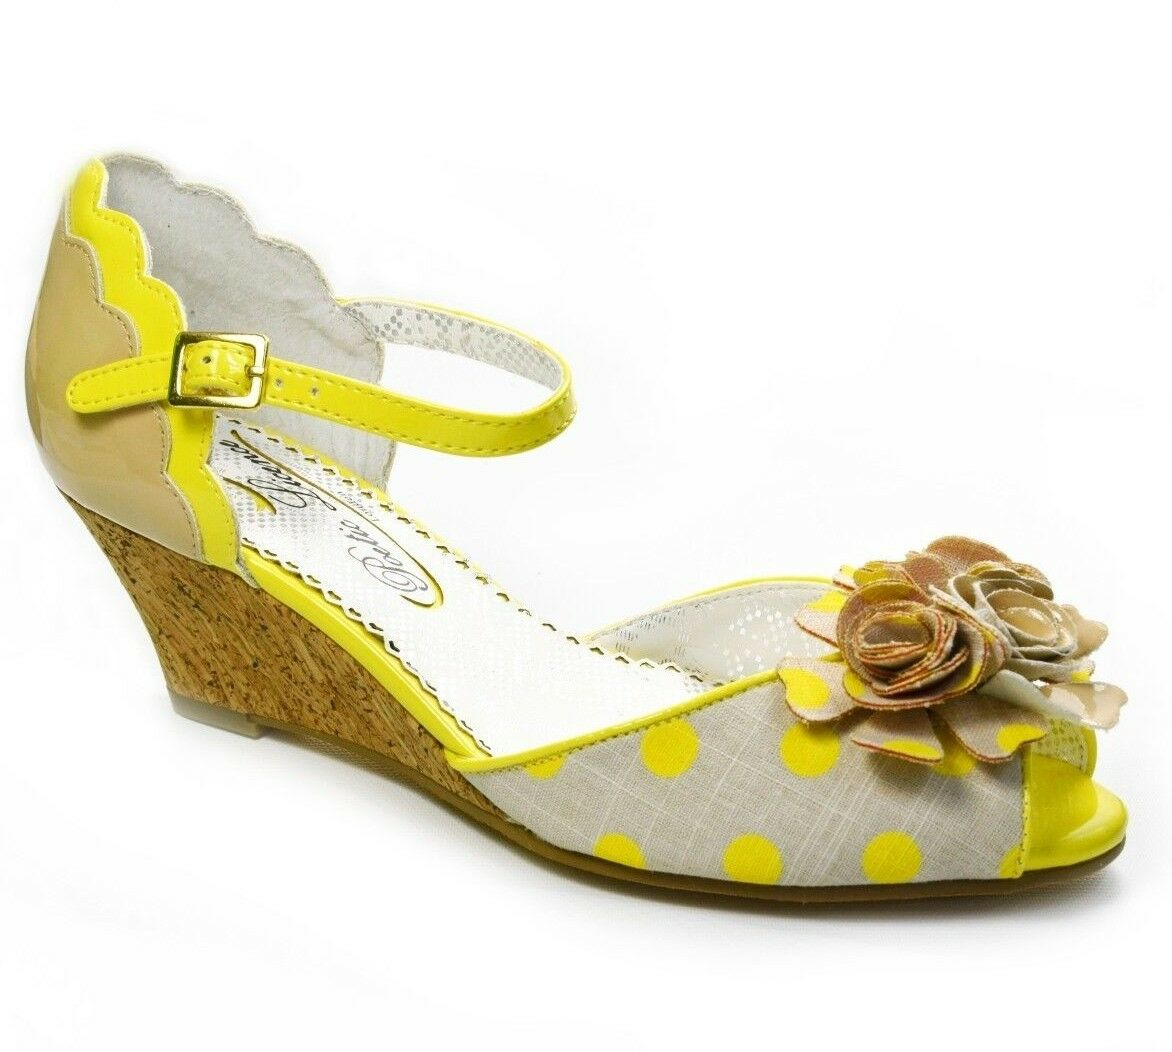 Poetic Licence Femmes Crazy Daisy Wedge Sandales Chaussures jaune 6.5, 7.5